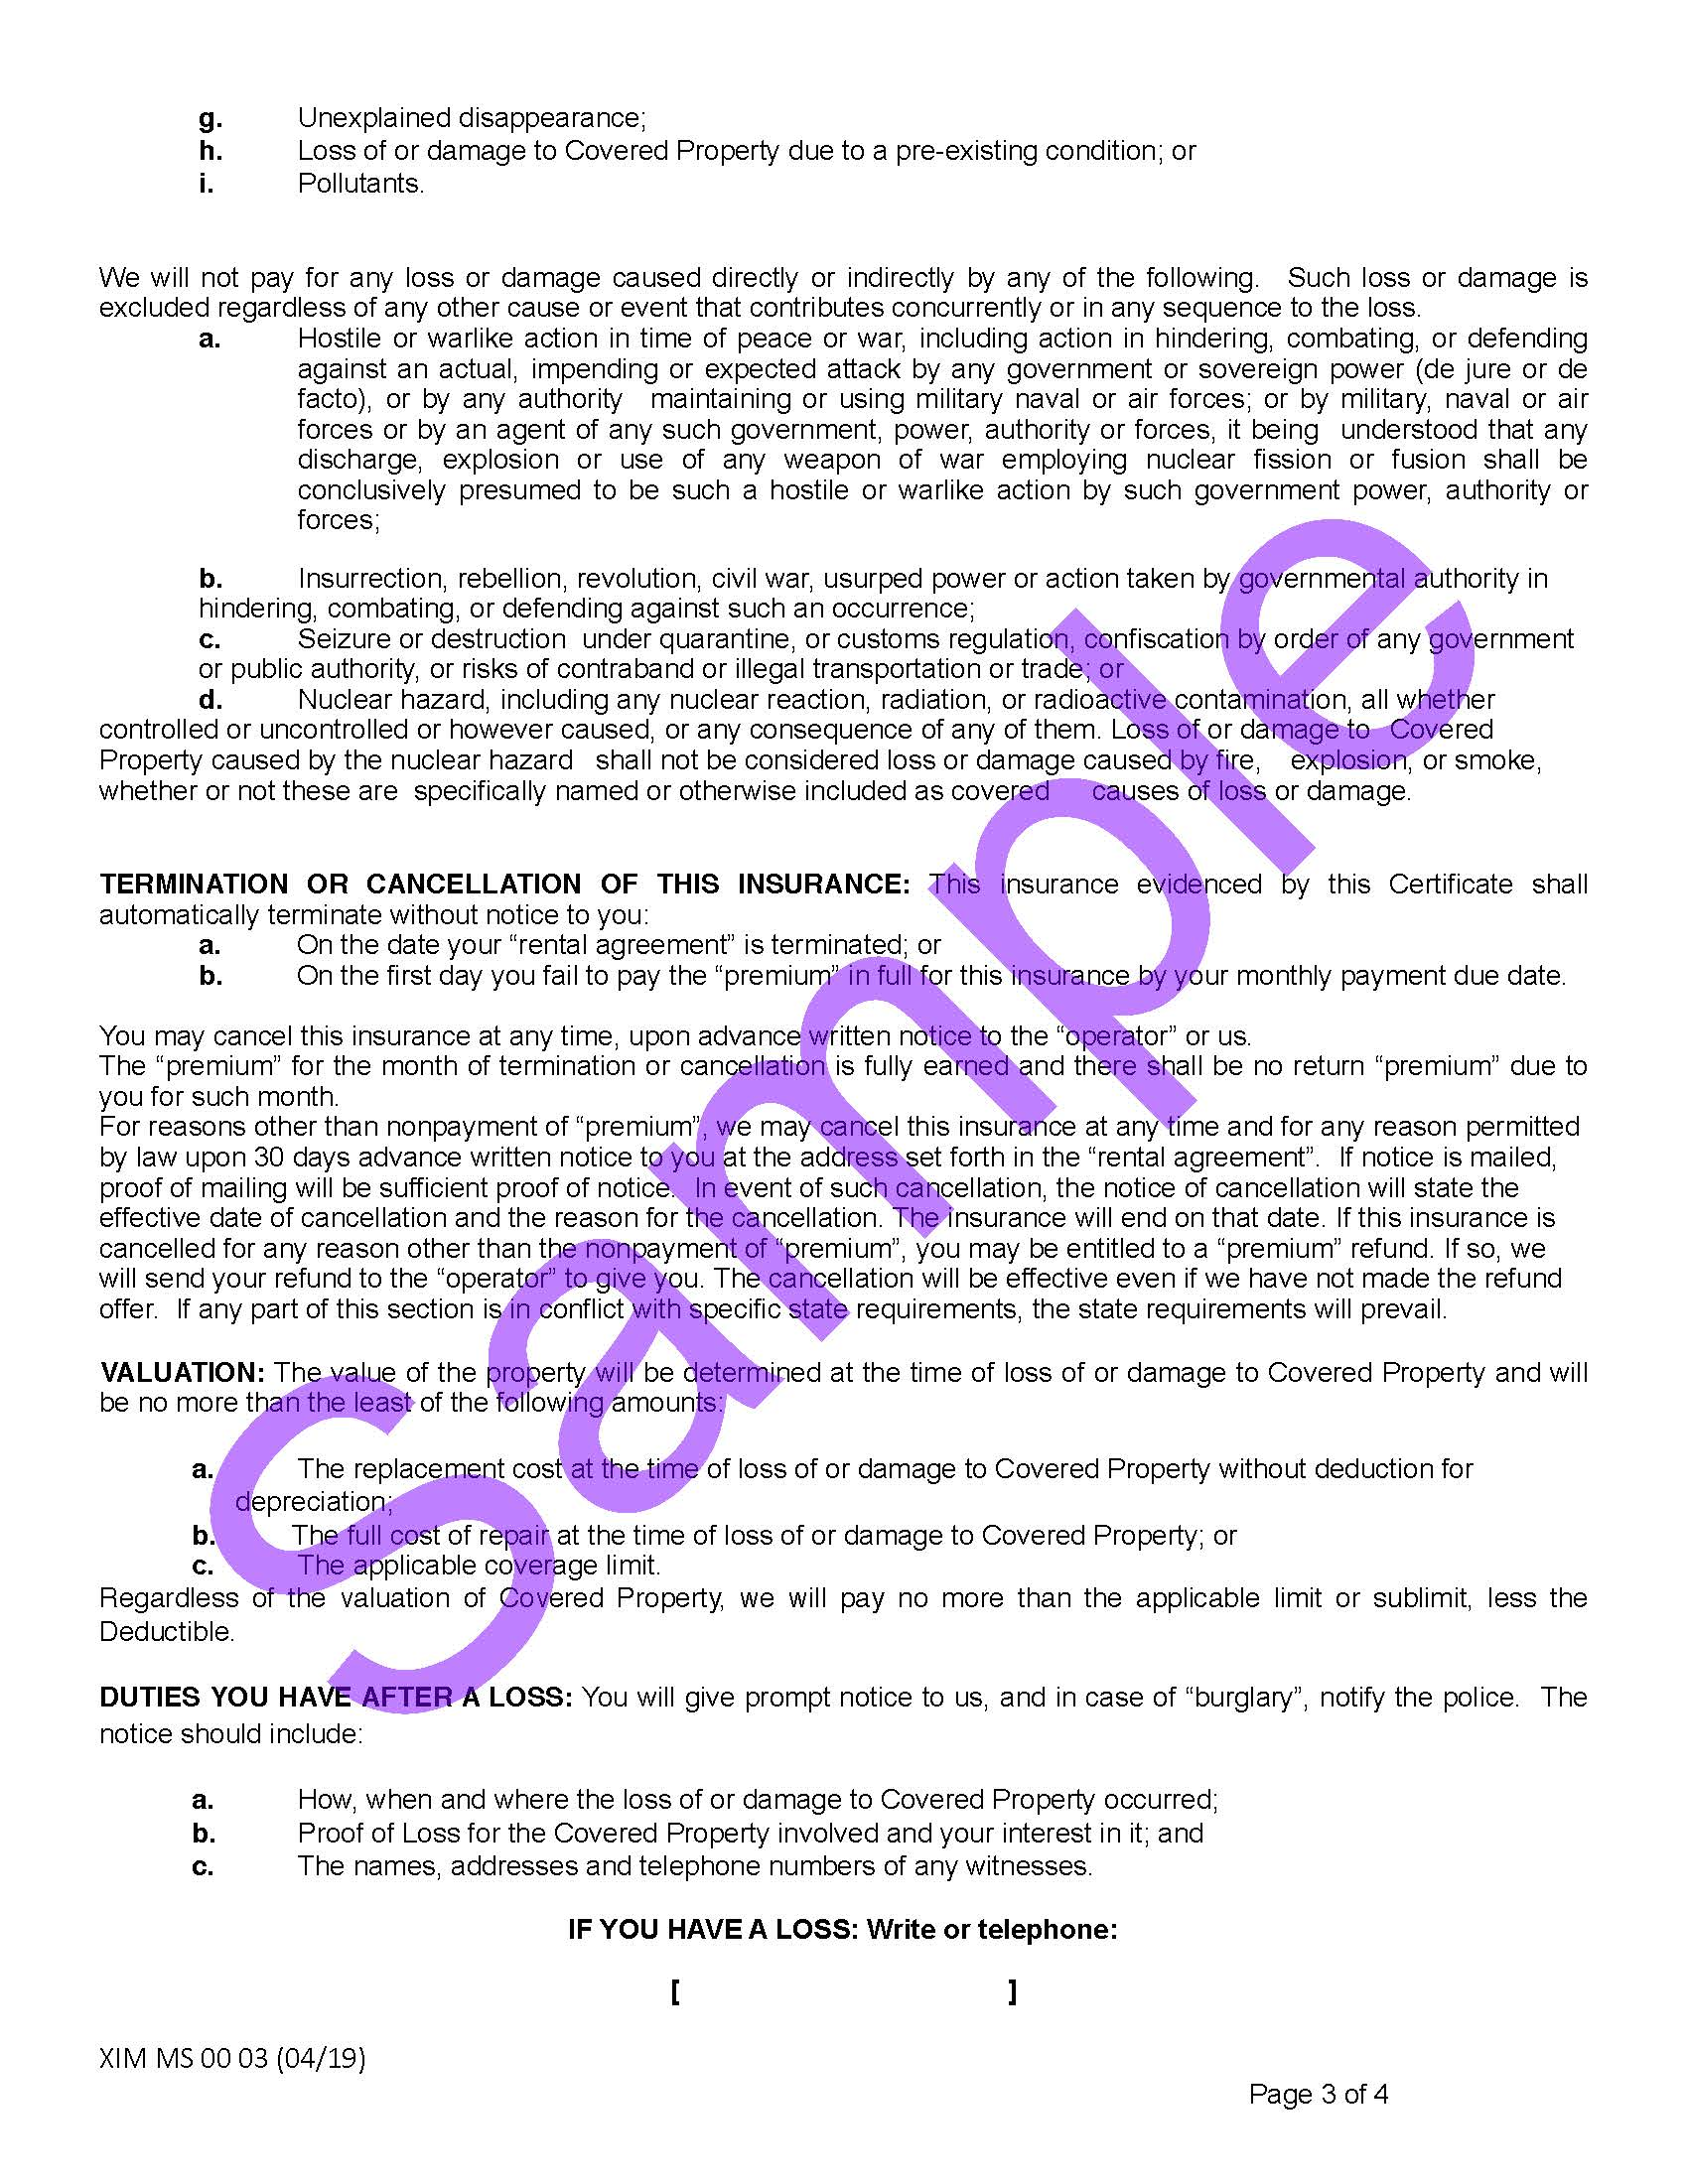 XIM MS 00 03 04 19 Mississippi Certificate of InsuranceSample_Page_3.jpg